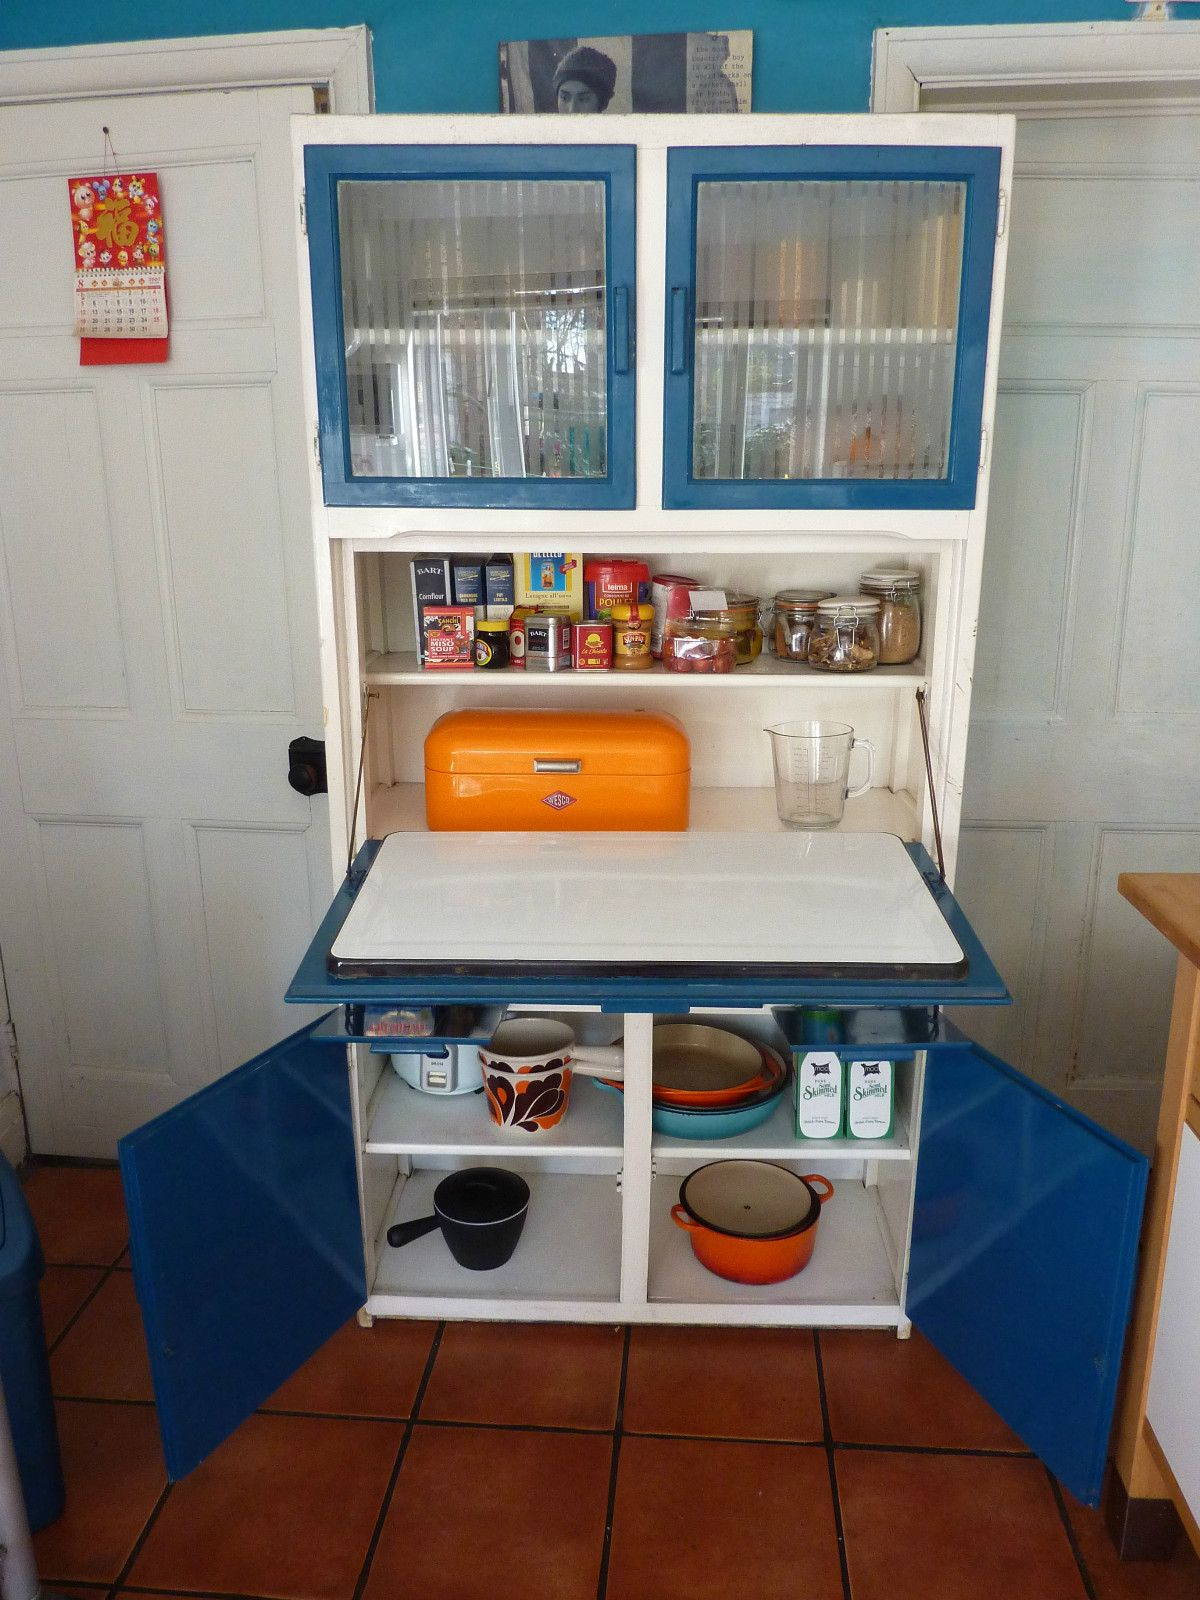 S Kitchen Cabinets Delectable Retro Vintage1950's 1960's Kitchen Larder Cabinet Cupboard Design Inspiration